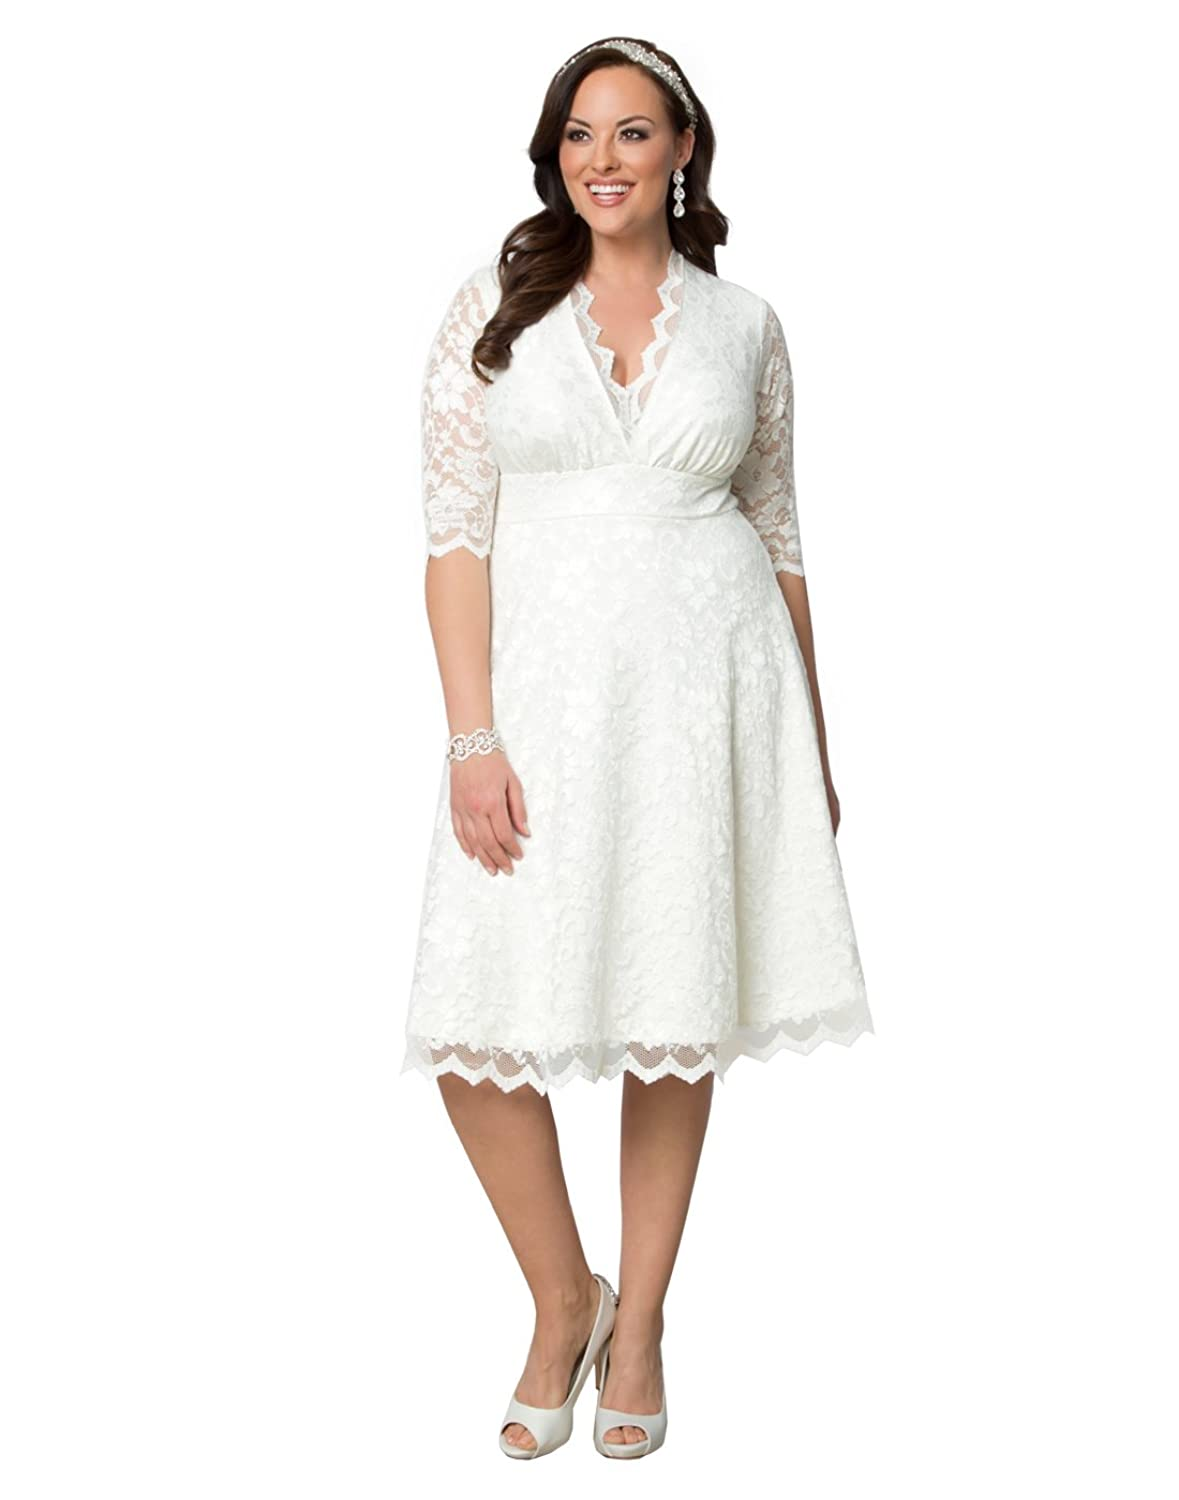 1940s Style Dresses and Clothing Kiyonna Womens Plus Size Wedding Belle Dress $248.00 AT vintagedancer.com